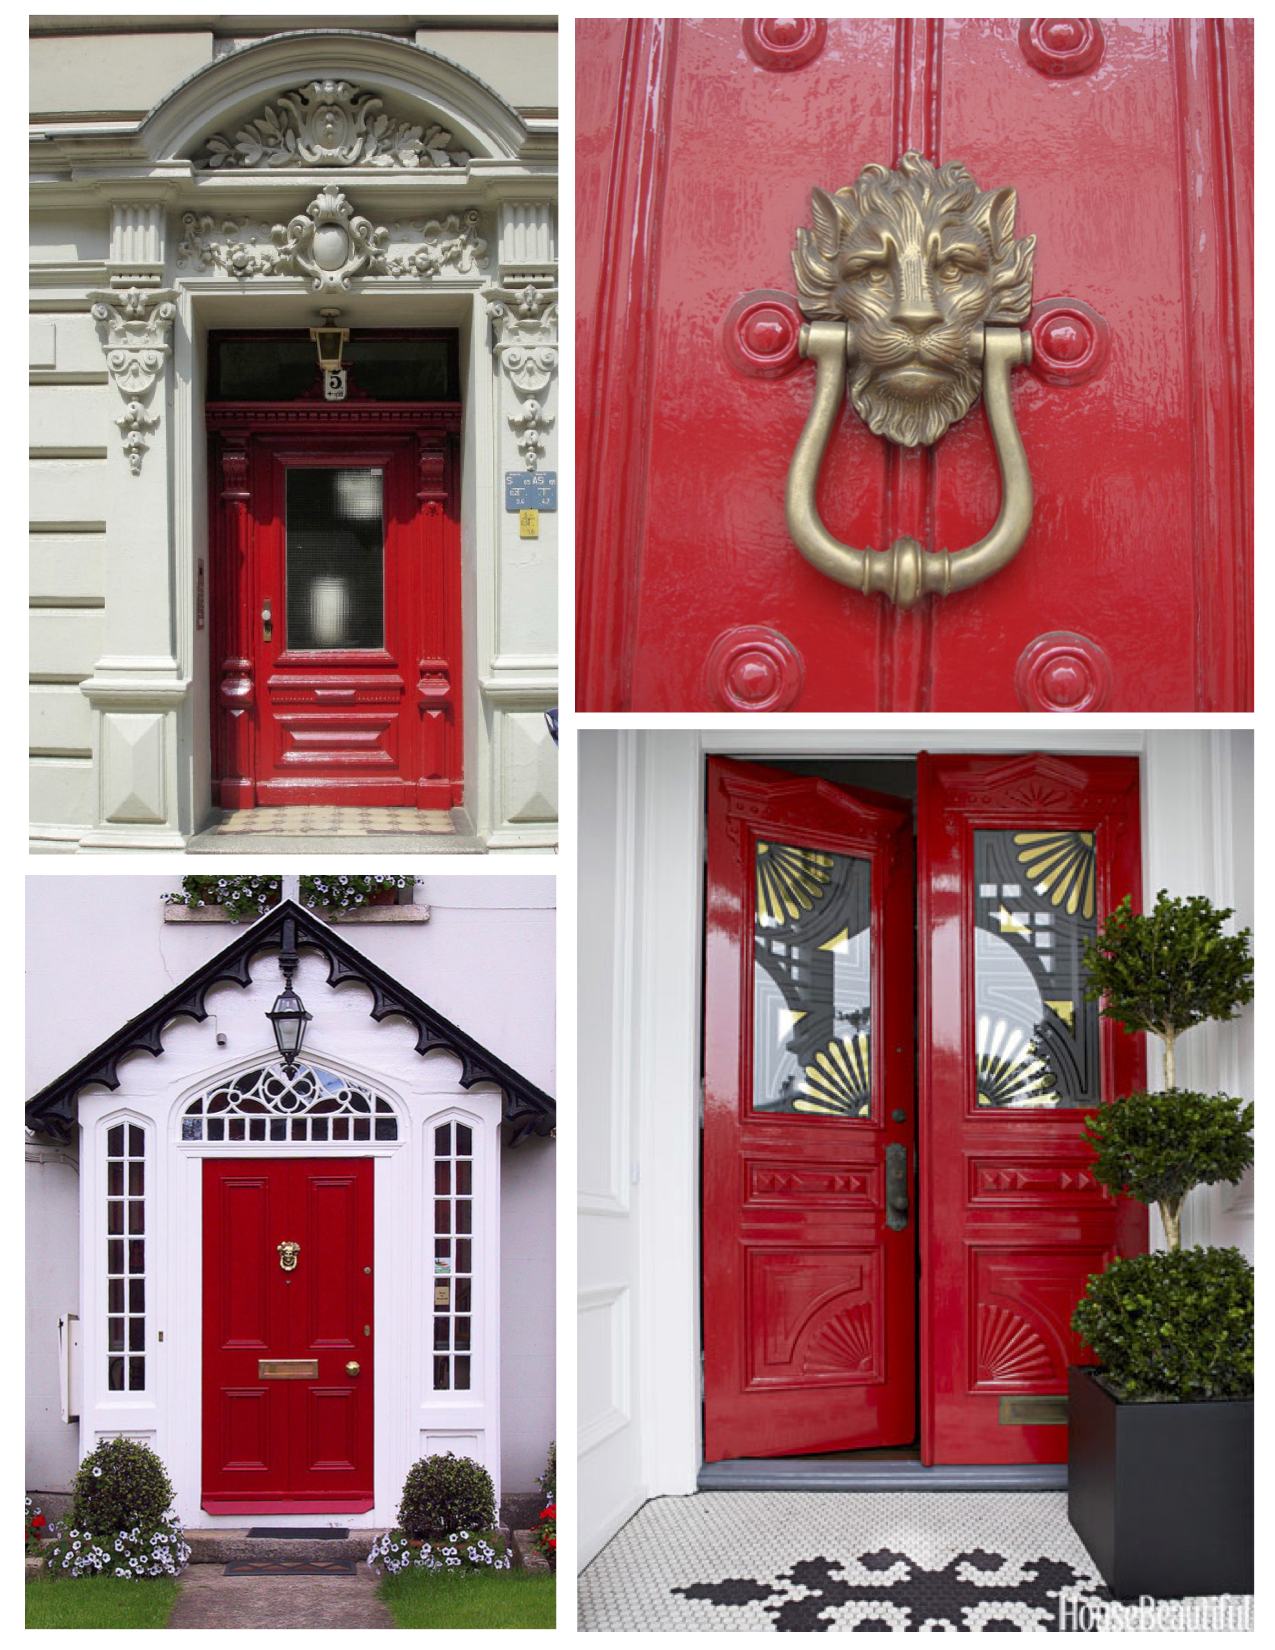 The Brilliant Red Painted Exterior Door: Impact In Bold Color